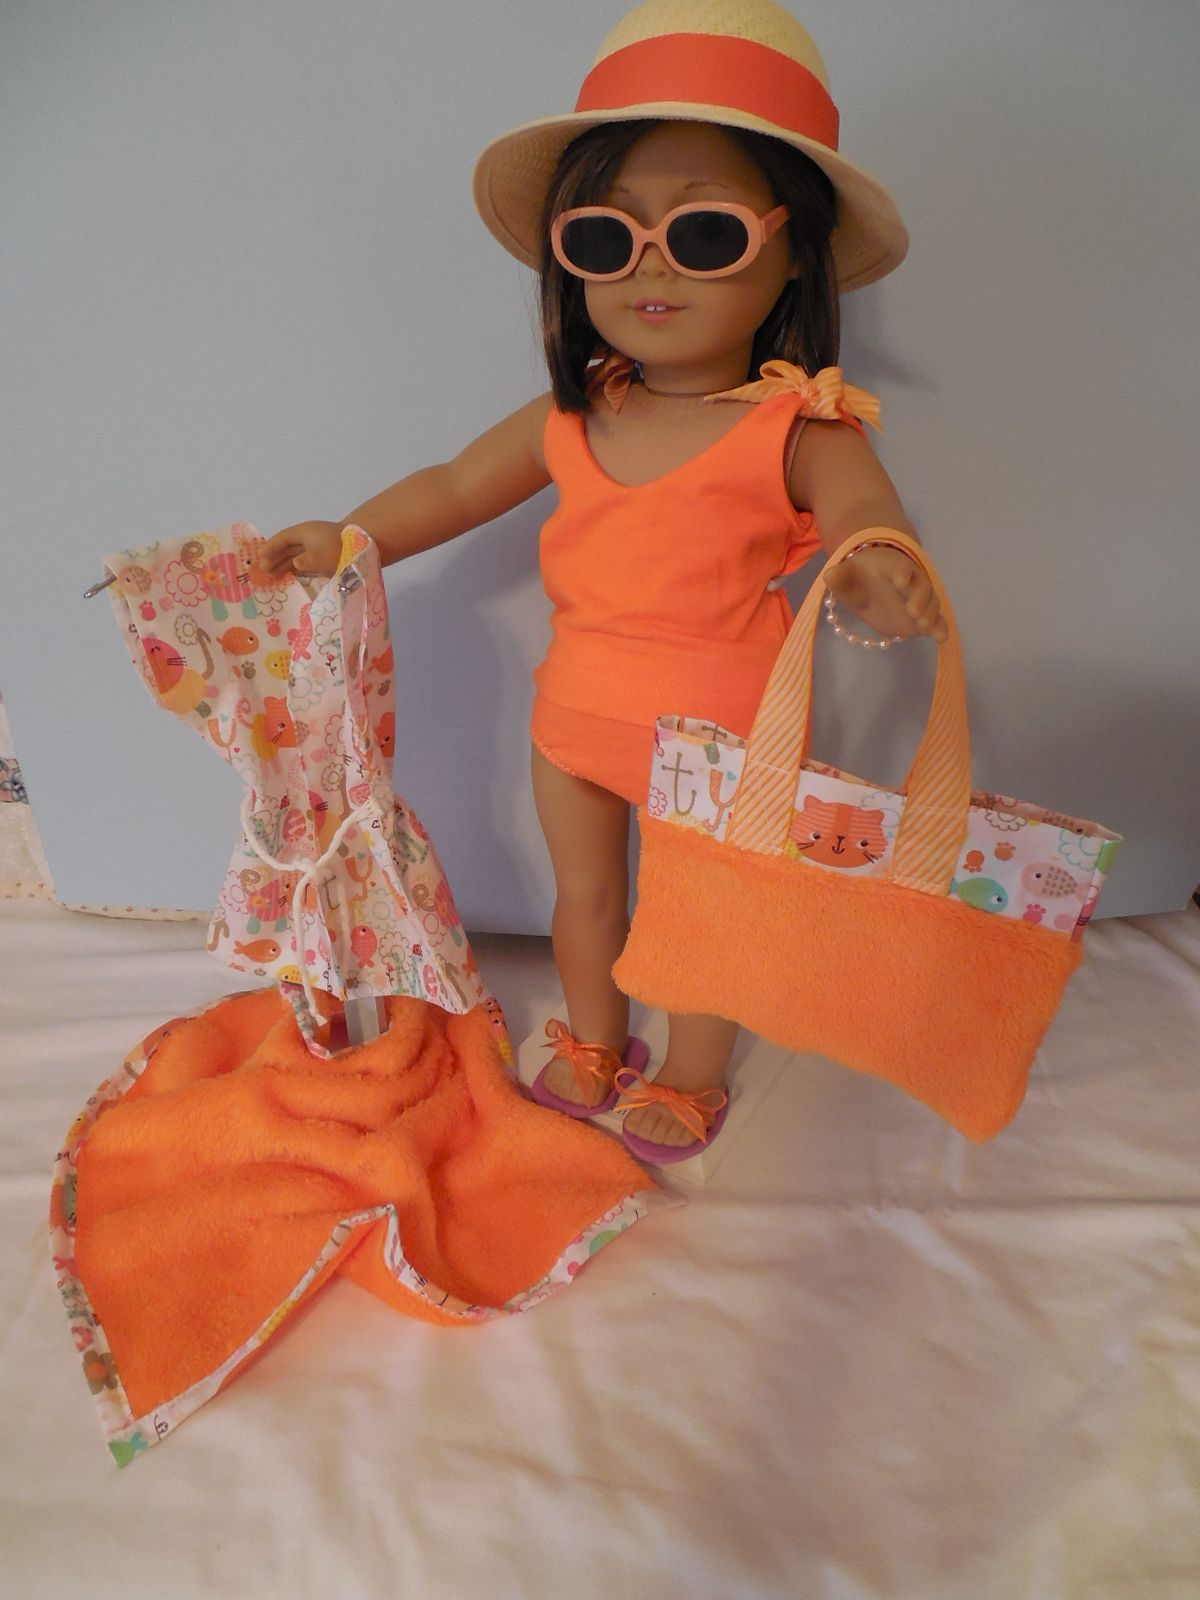 Brooke is ready to hit the beach in her orange tankini with matching beach bag, towel, and cover-uo.